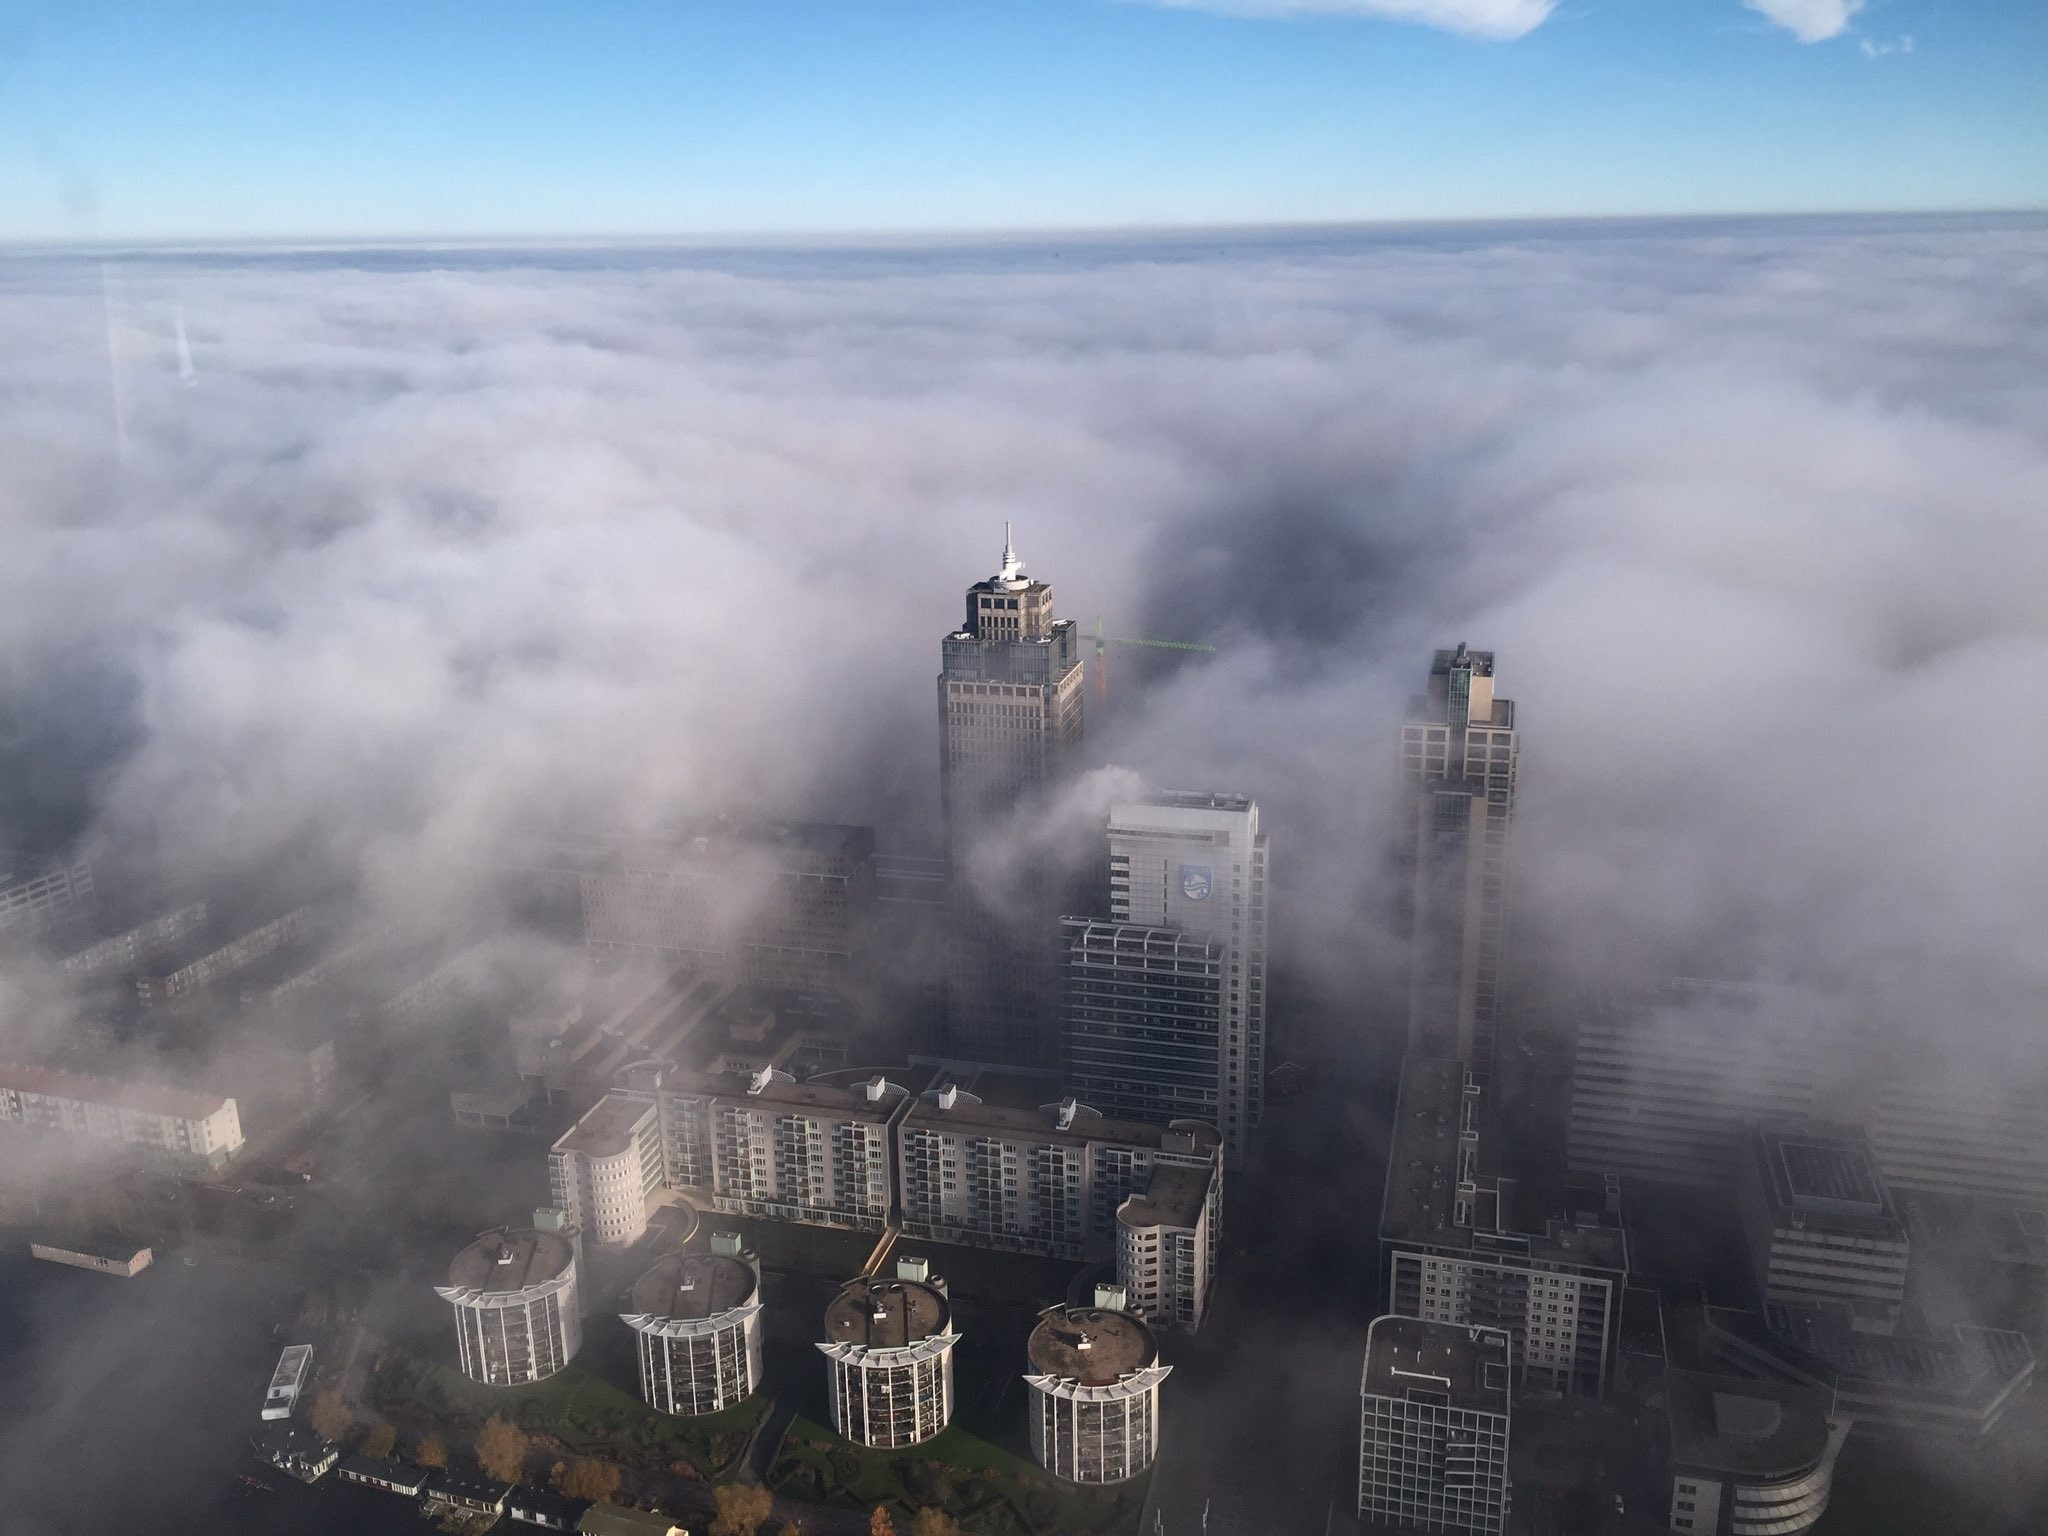 2048x1536 Mist around the Rembrandt tower today - picture by a police helicopter  wallpaper/ background for iPad mini/ air/ 2 / pro/ laptop